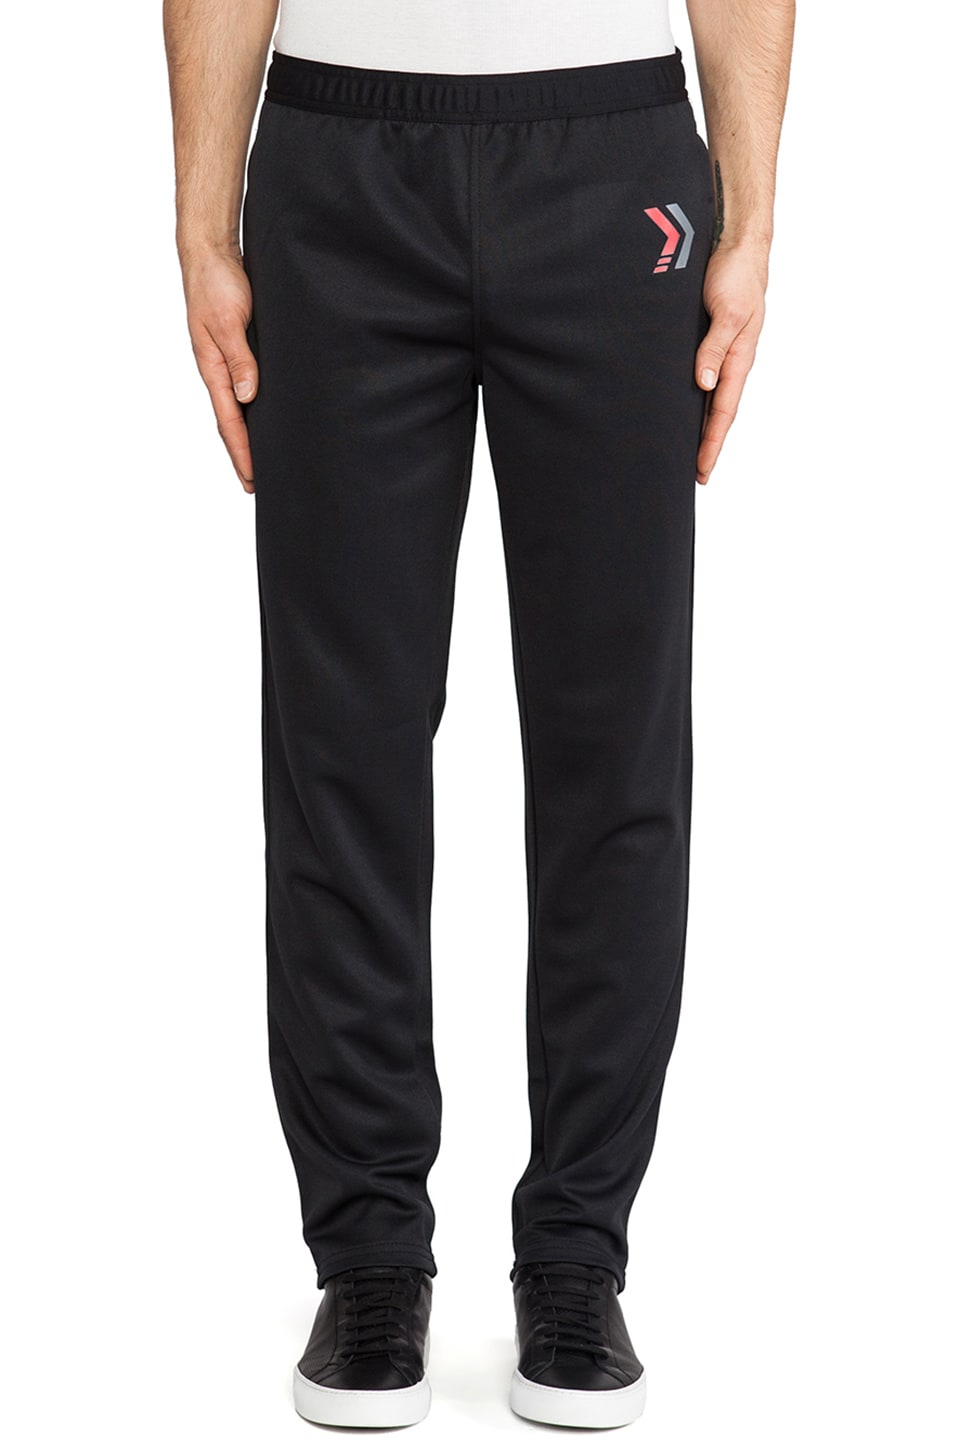 Athletic Recon Stallion Pant in Black